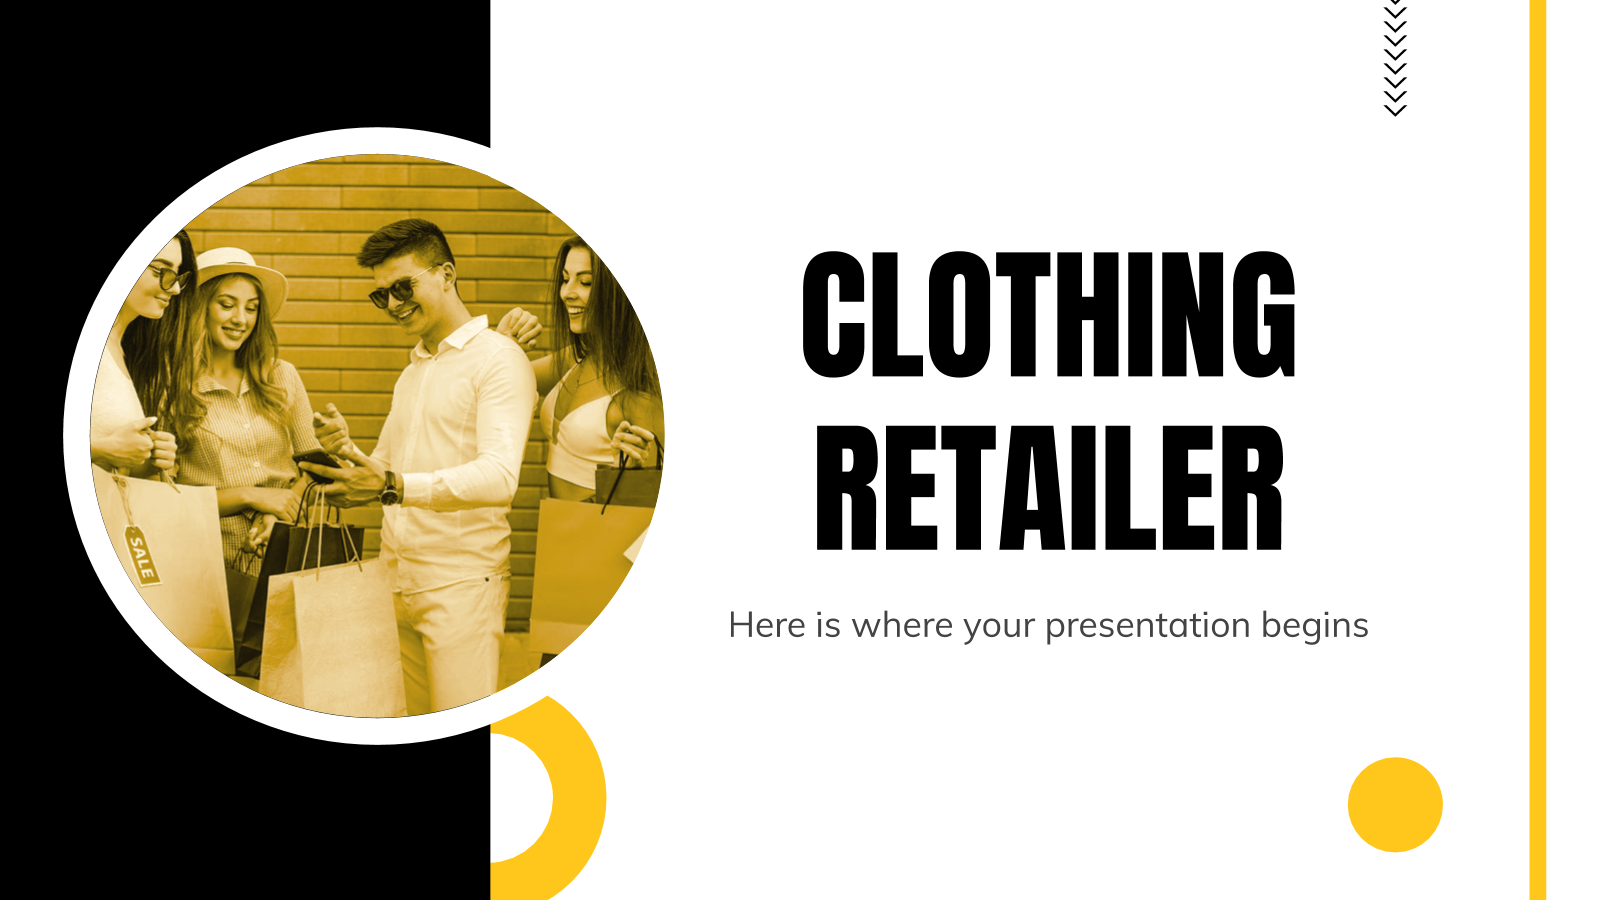 Clothing Retailer Business Plan presentation template